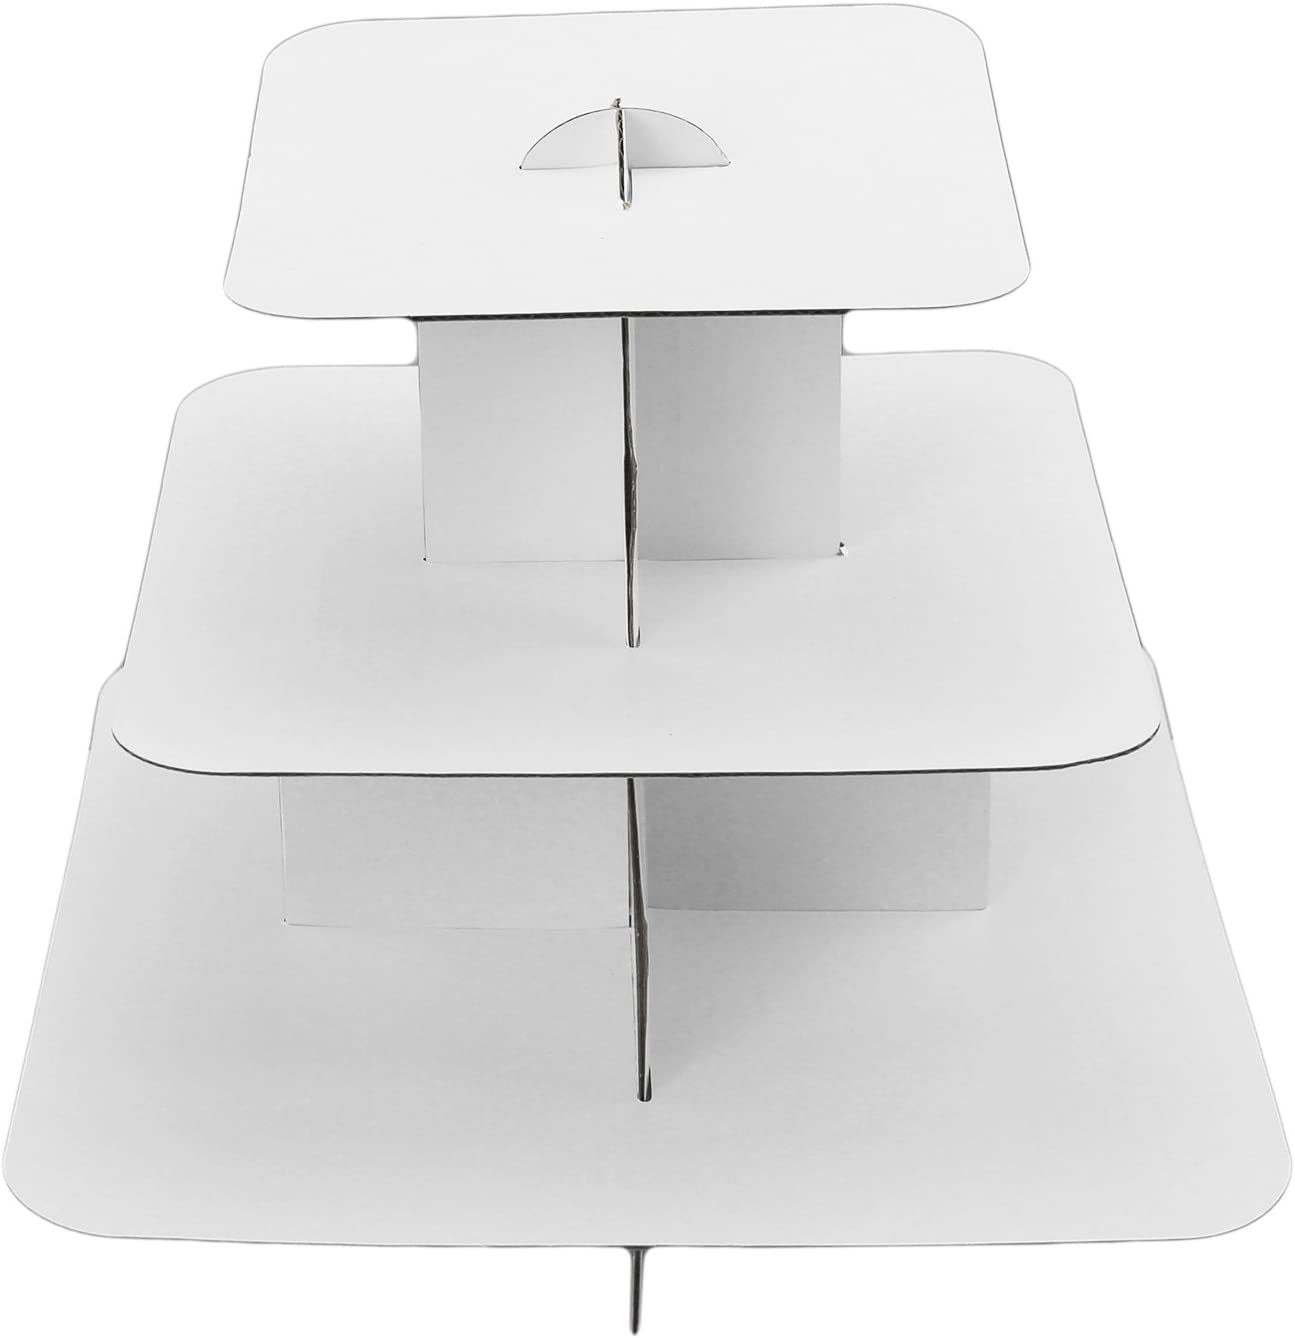 Ifavor123 White Square 3-Tier Cardboard Cupcake Stand Dessert Tower Treat Stacked Pastry Serving Platter Food Display (Pkg of 1)